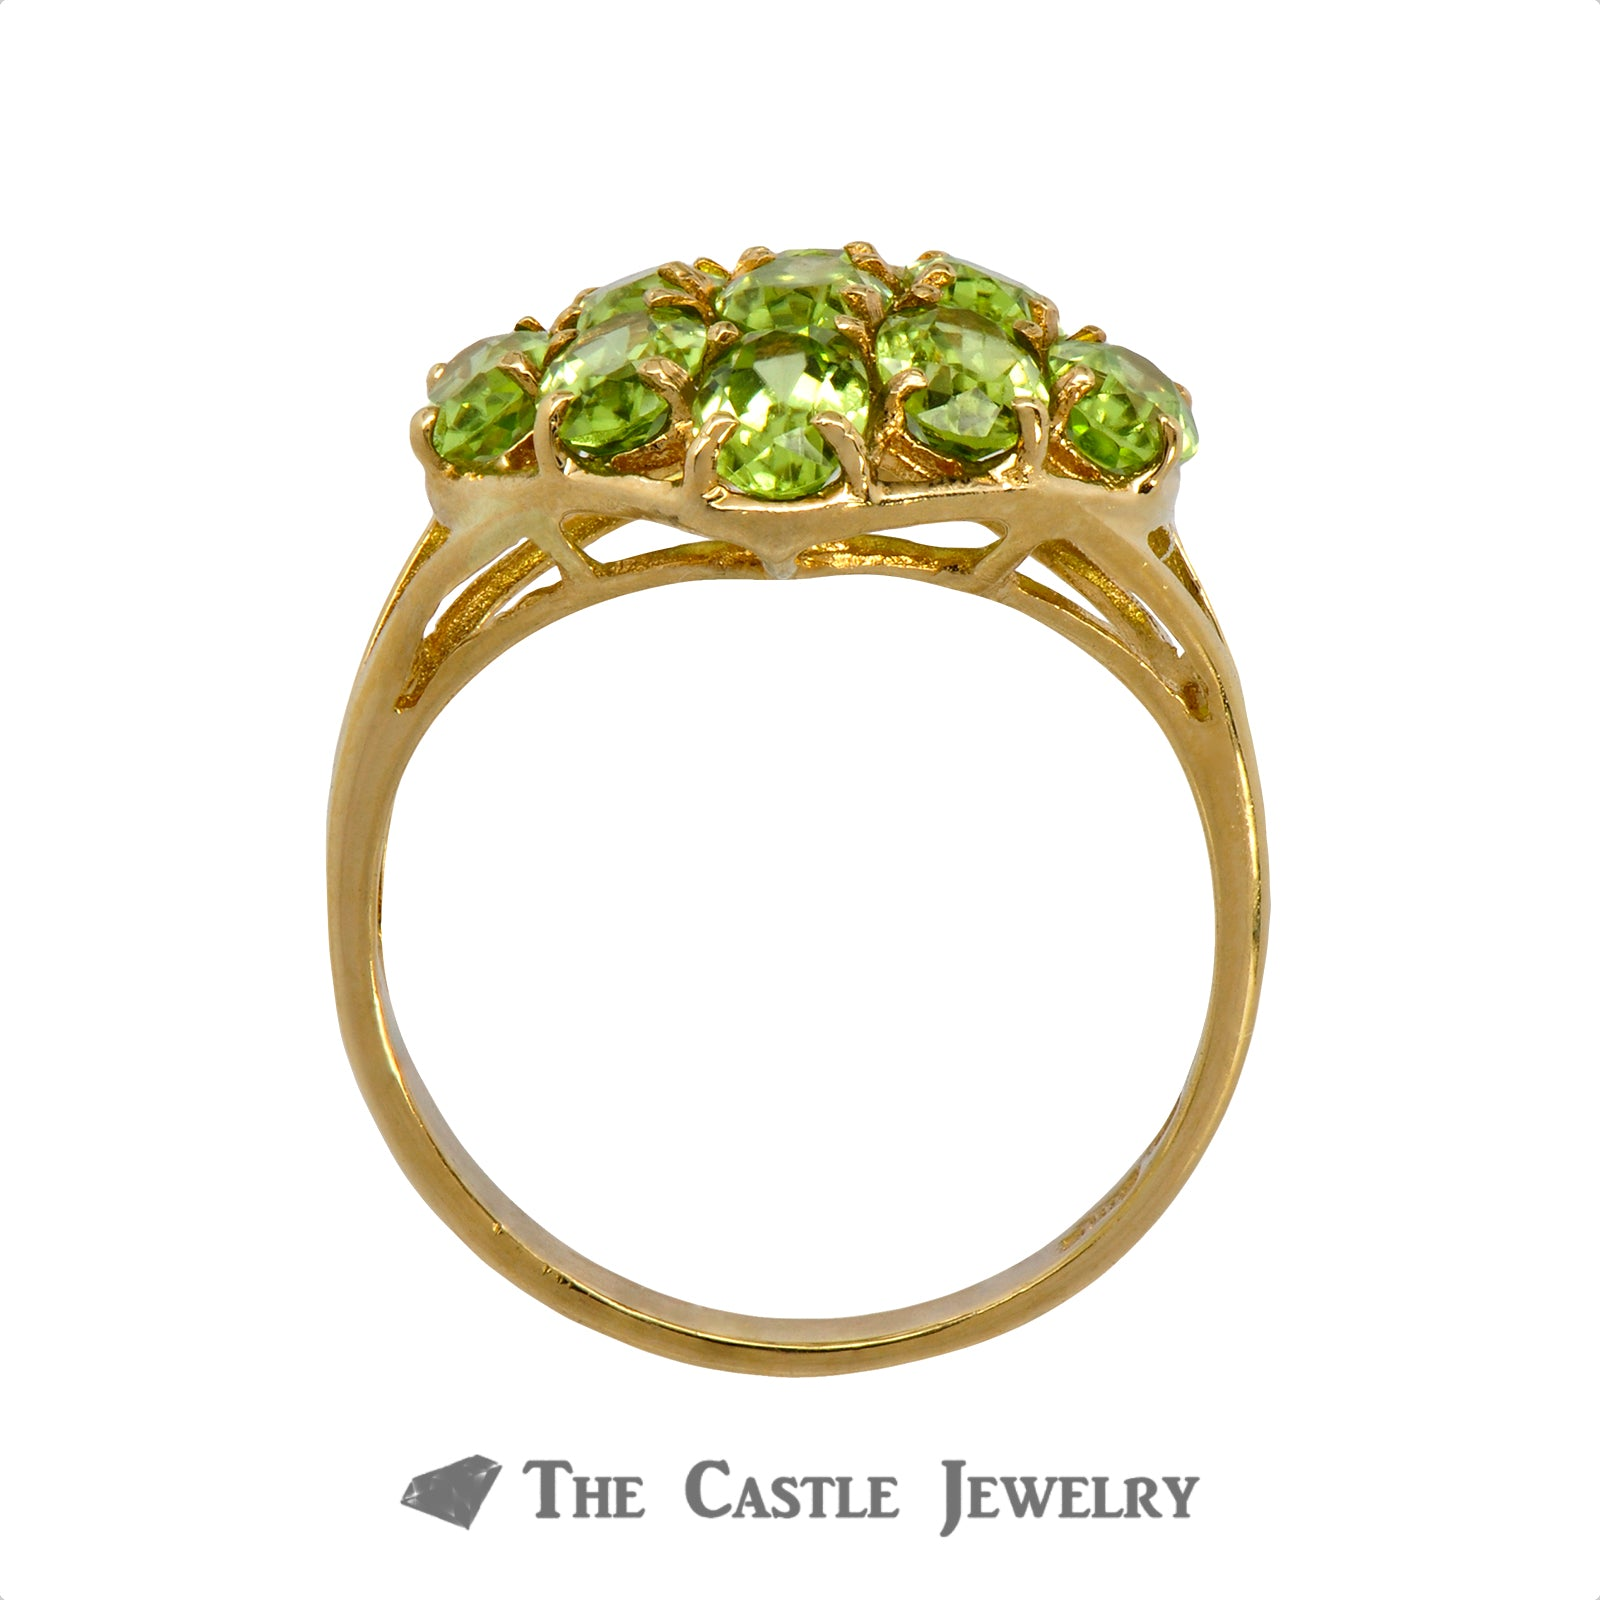 Oval Cut Peridot Cluster Ring Crafted in 10k Yellow Gold-1